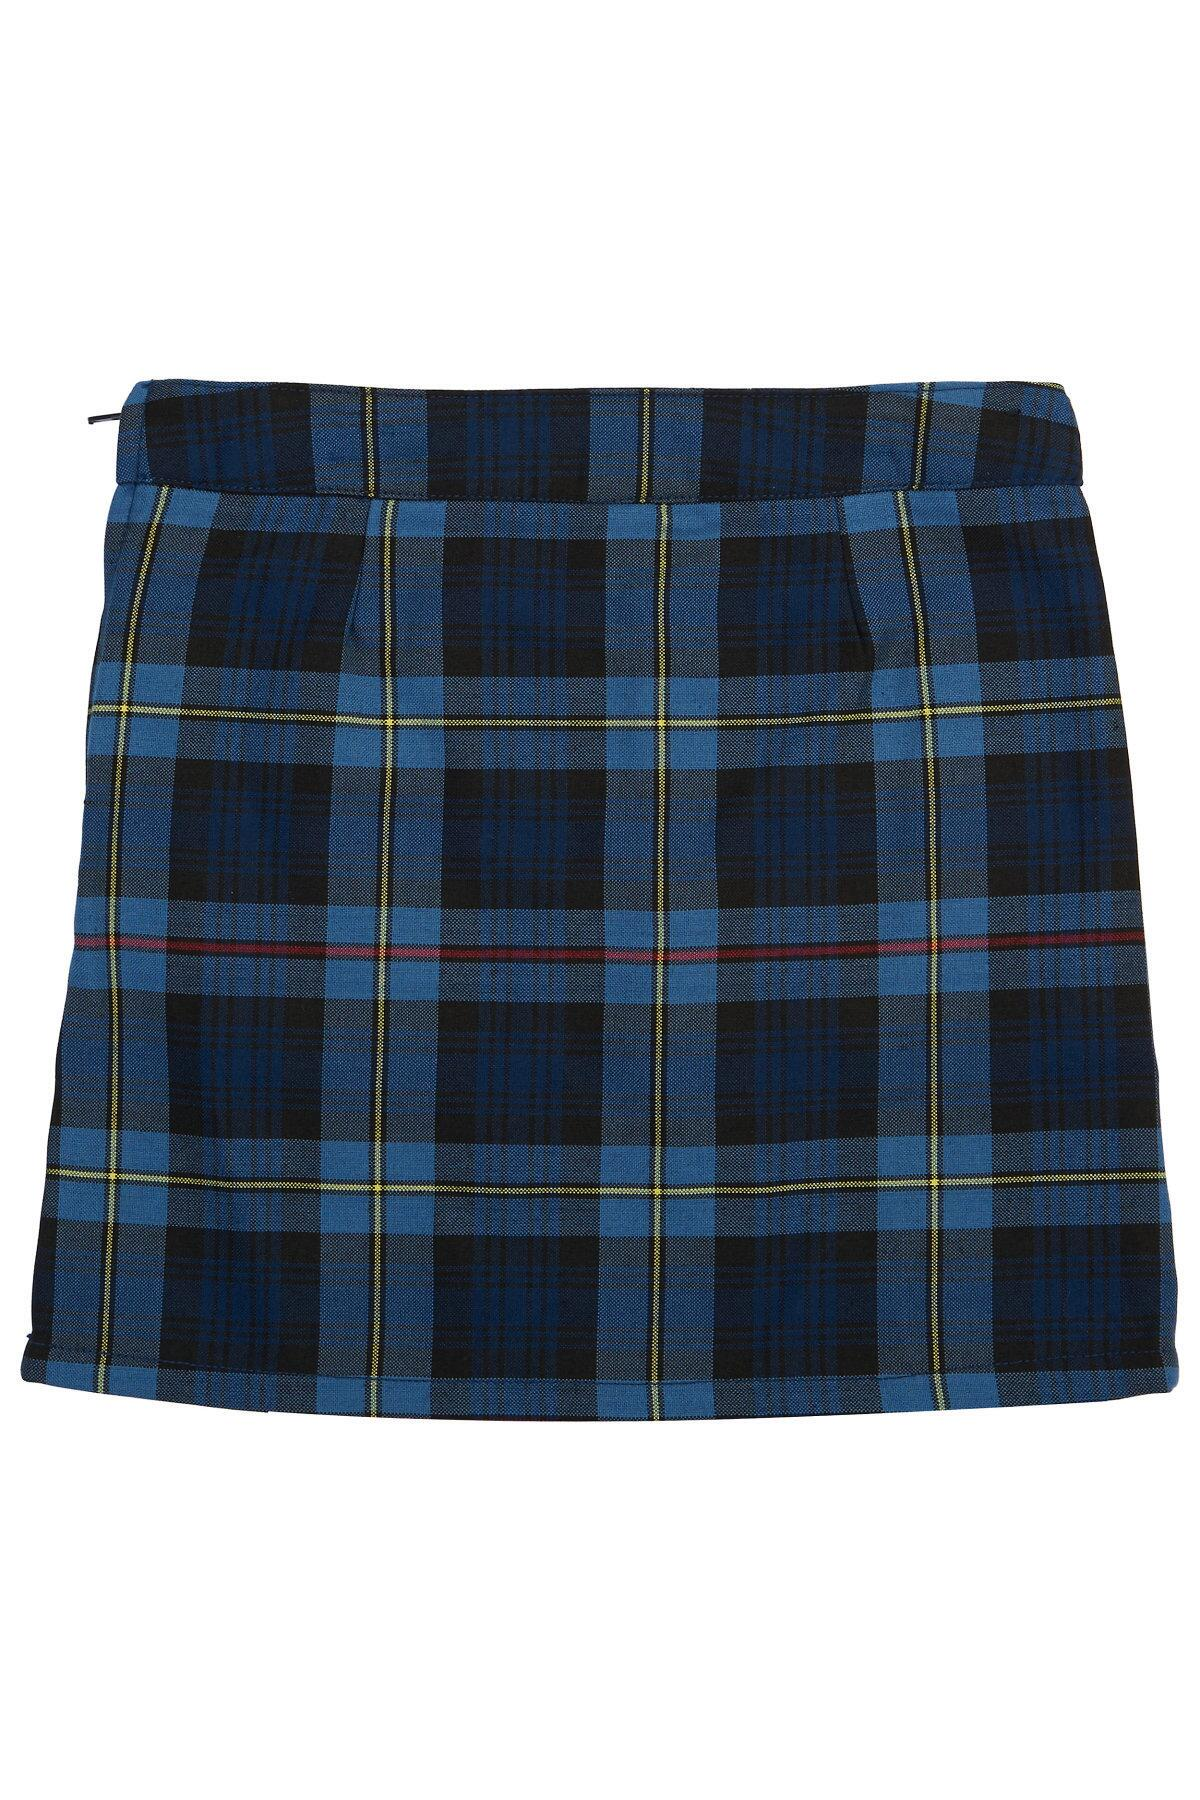 b6de2f3e0 Girls Plaid Two-Tab School Uniform Scooter Skirt, 4-6x| French Toast - French  Toast